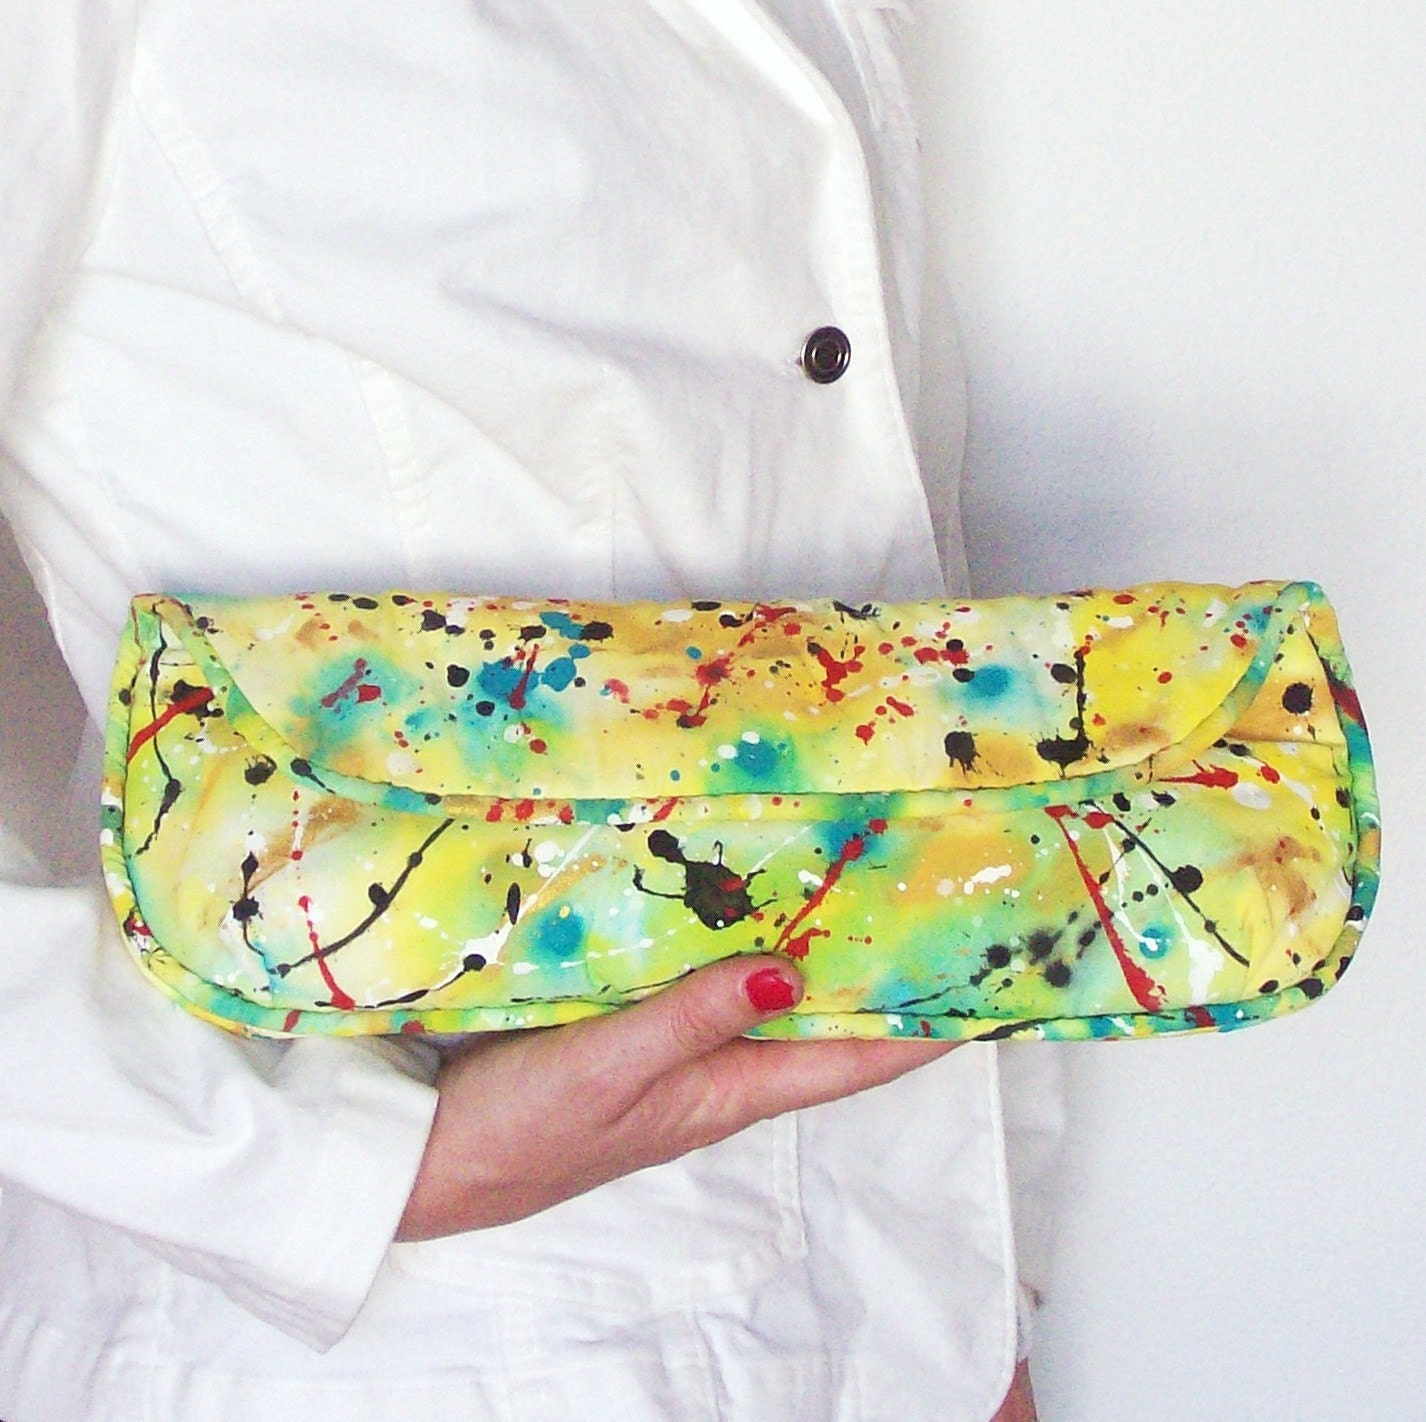 Handpainted UpCycled Graphic Graffiti Clutch in Canary Yellow